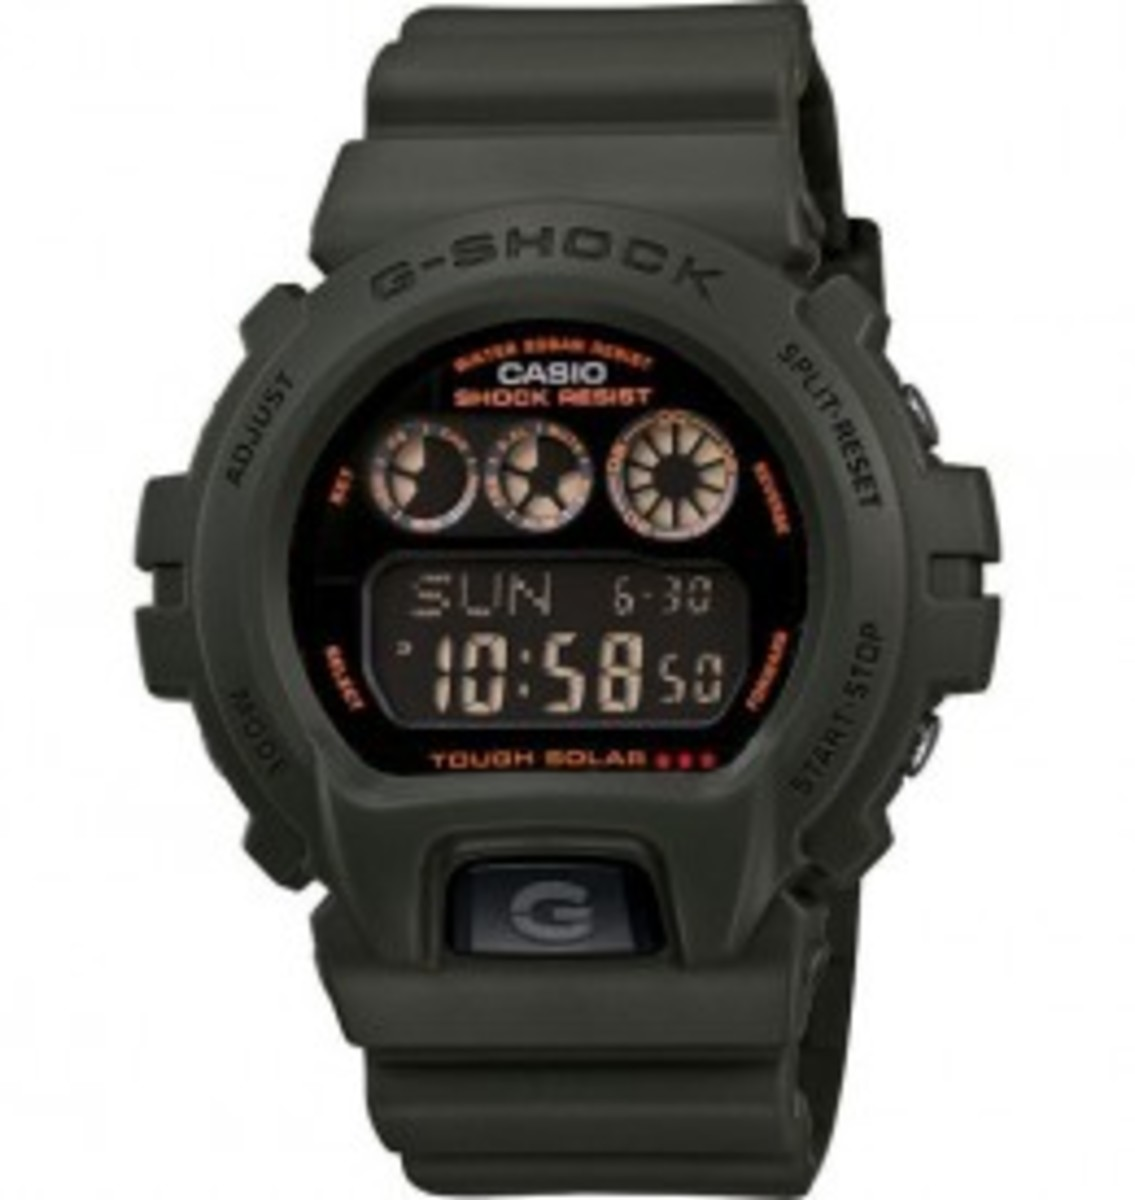 The G6900KG-3CR is the first solar-powered military-style watch in the G-Shock category.